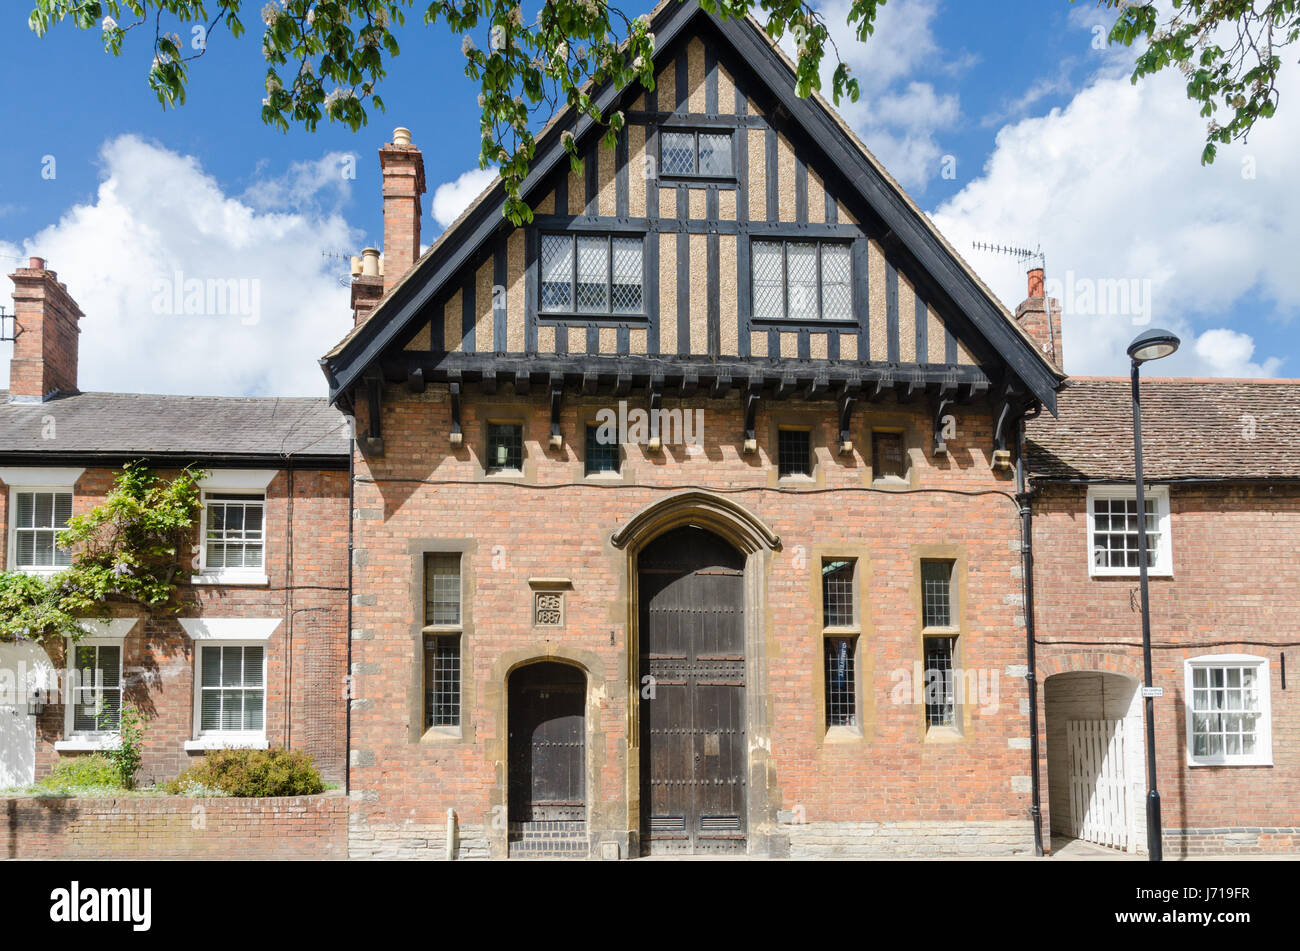 Old red brick building part timber framed in Stratford-u[on-Avon, Warwickshire Stock Photo